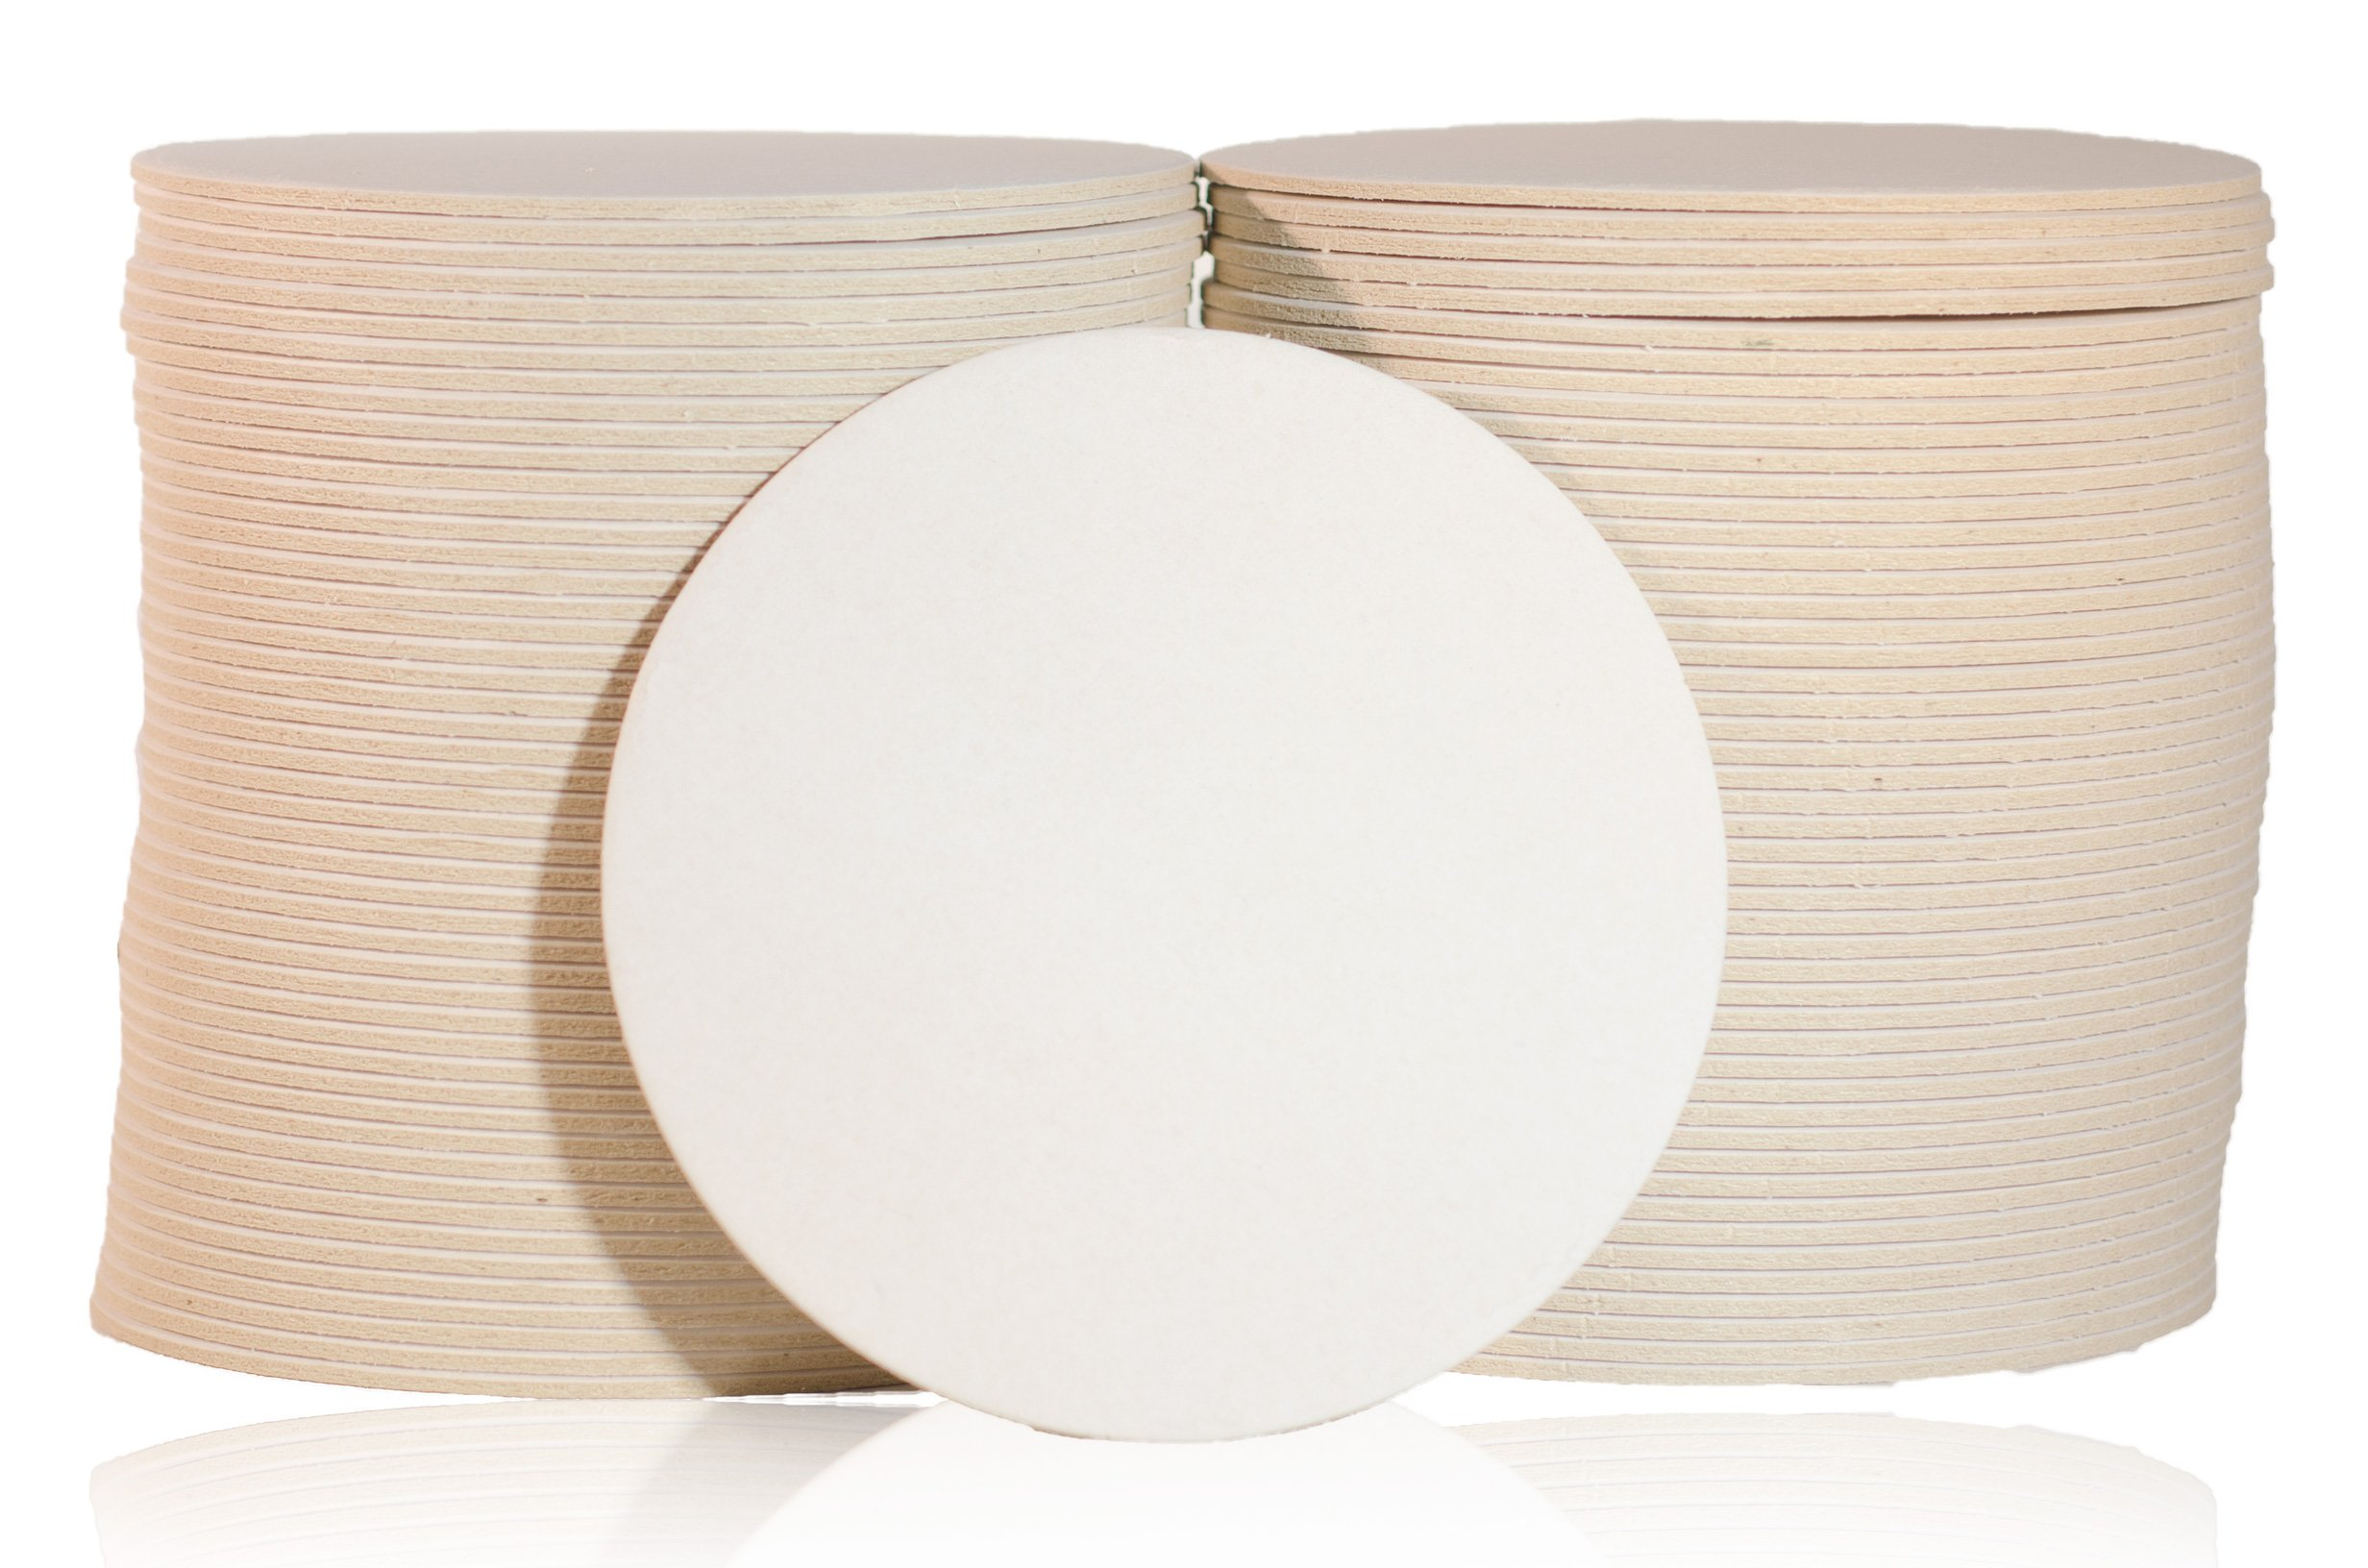 Katz Americas 3.5'' Round Heavyweight (80pt) Blank Pulpboard Coaster (Case of 1,000)